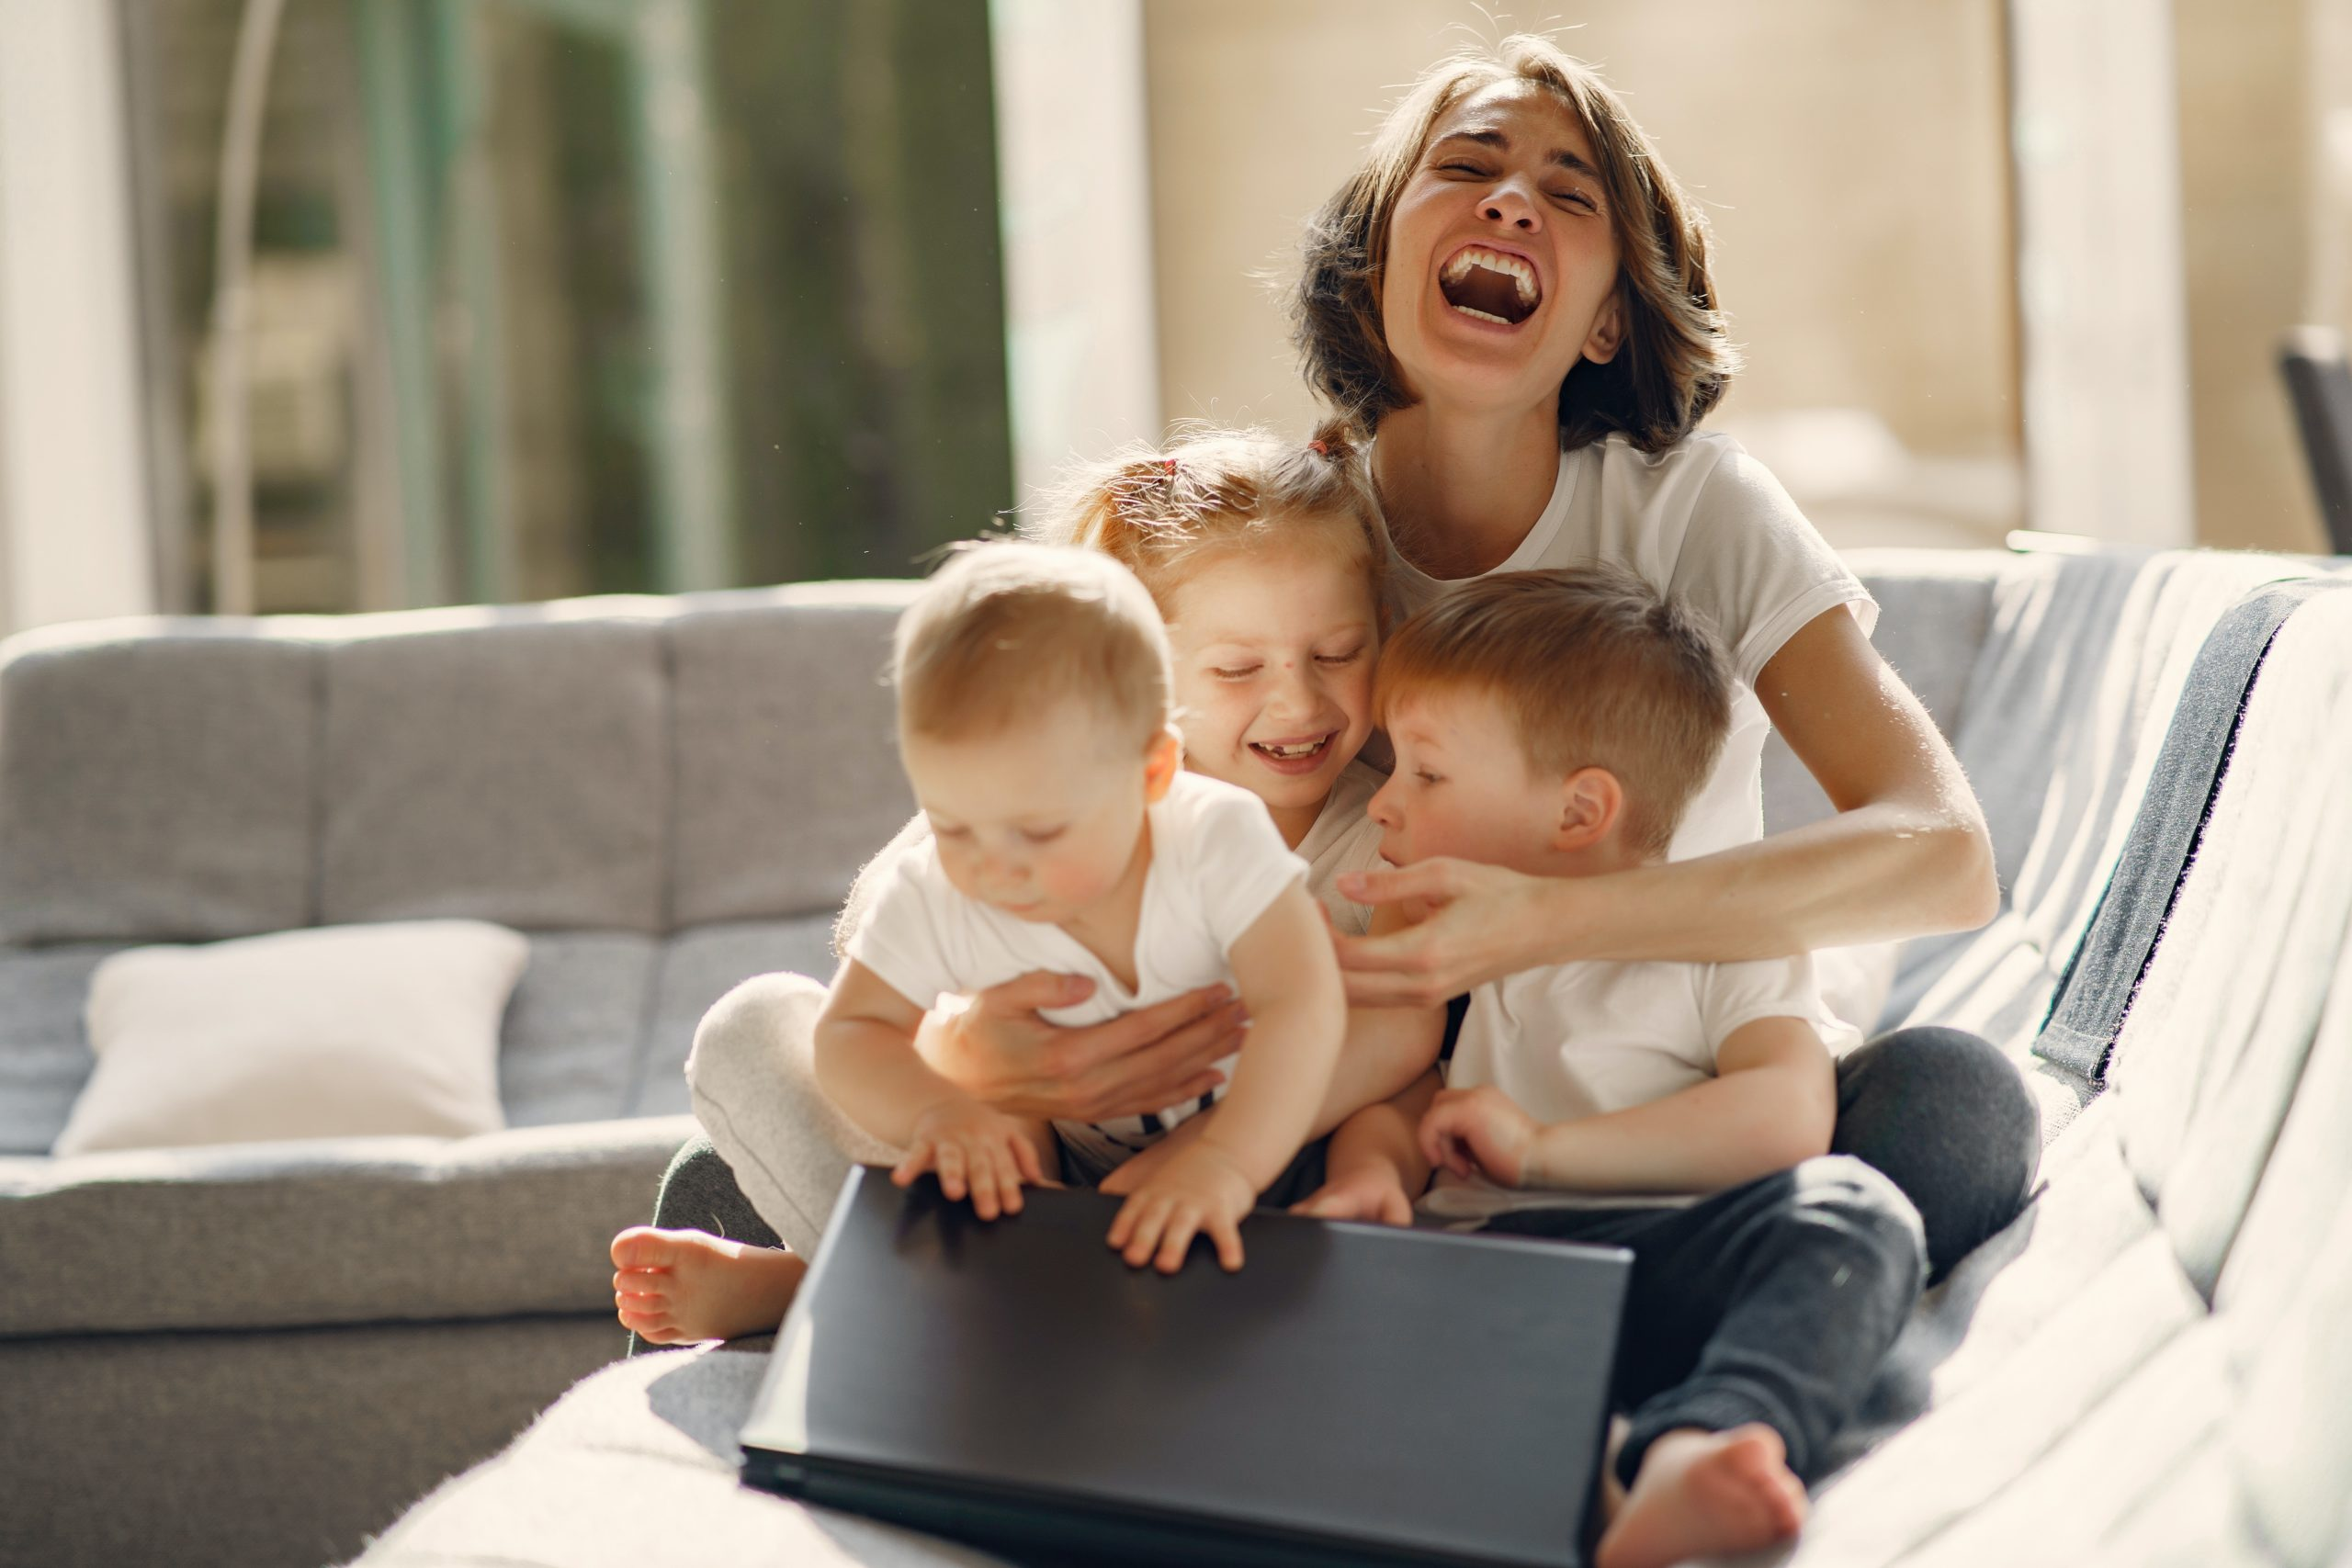 How to prepare for triplets?